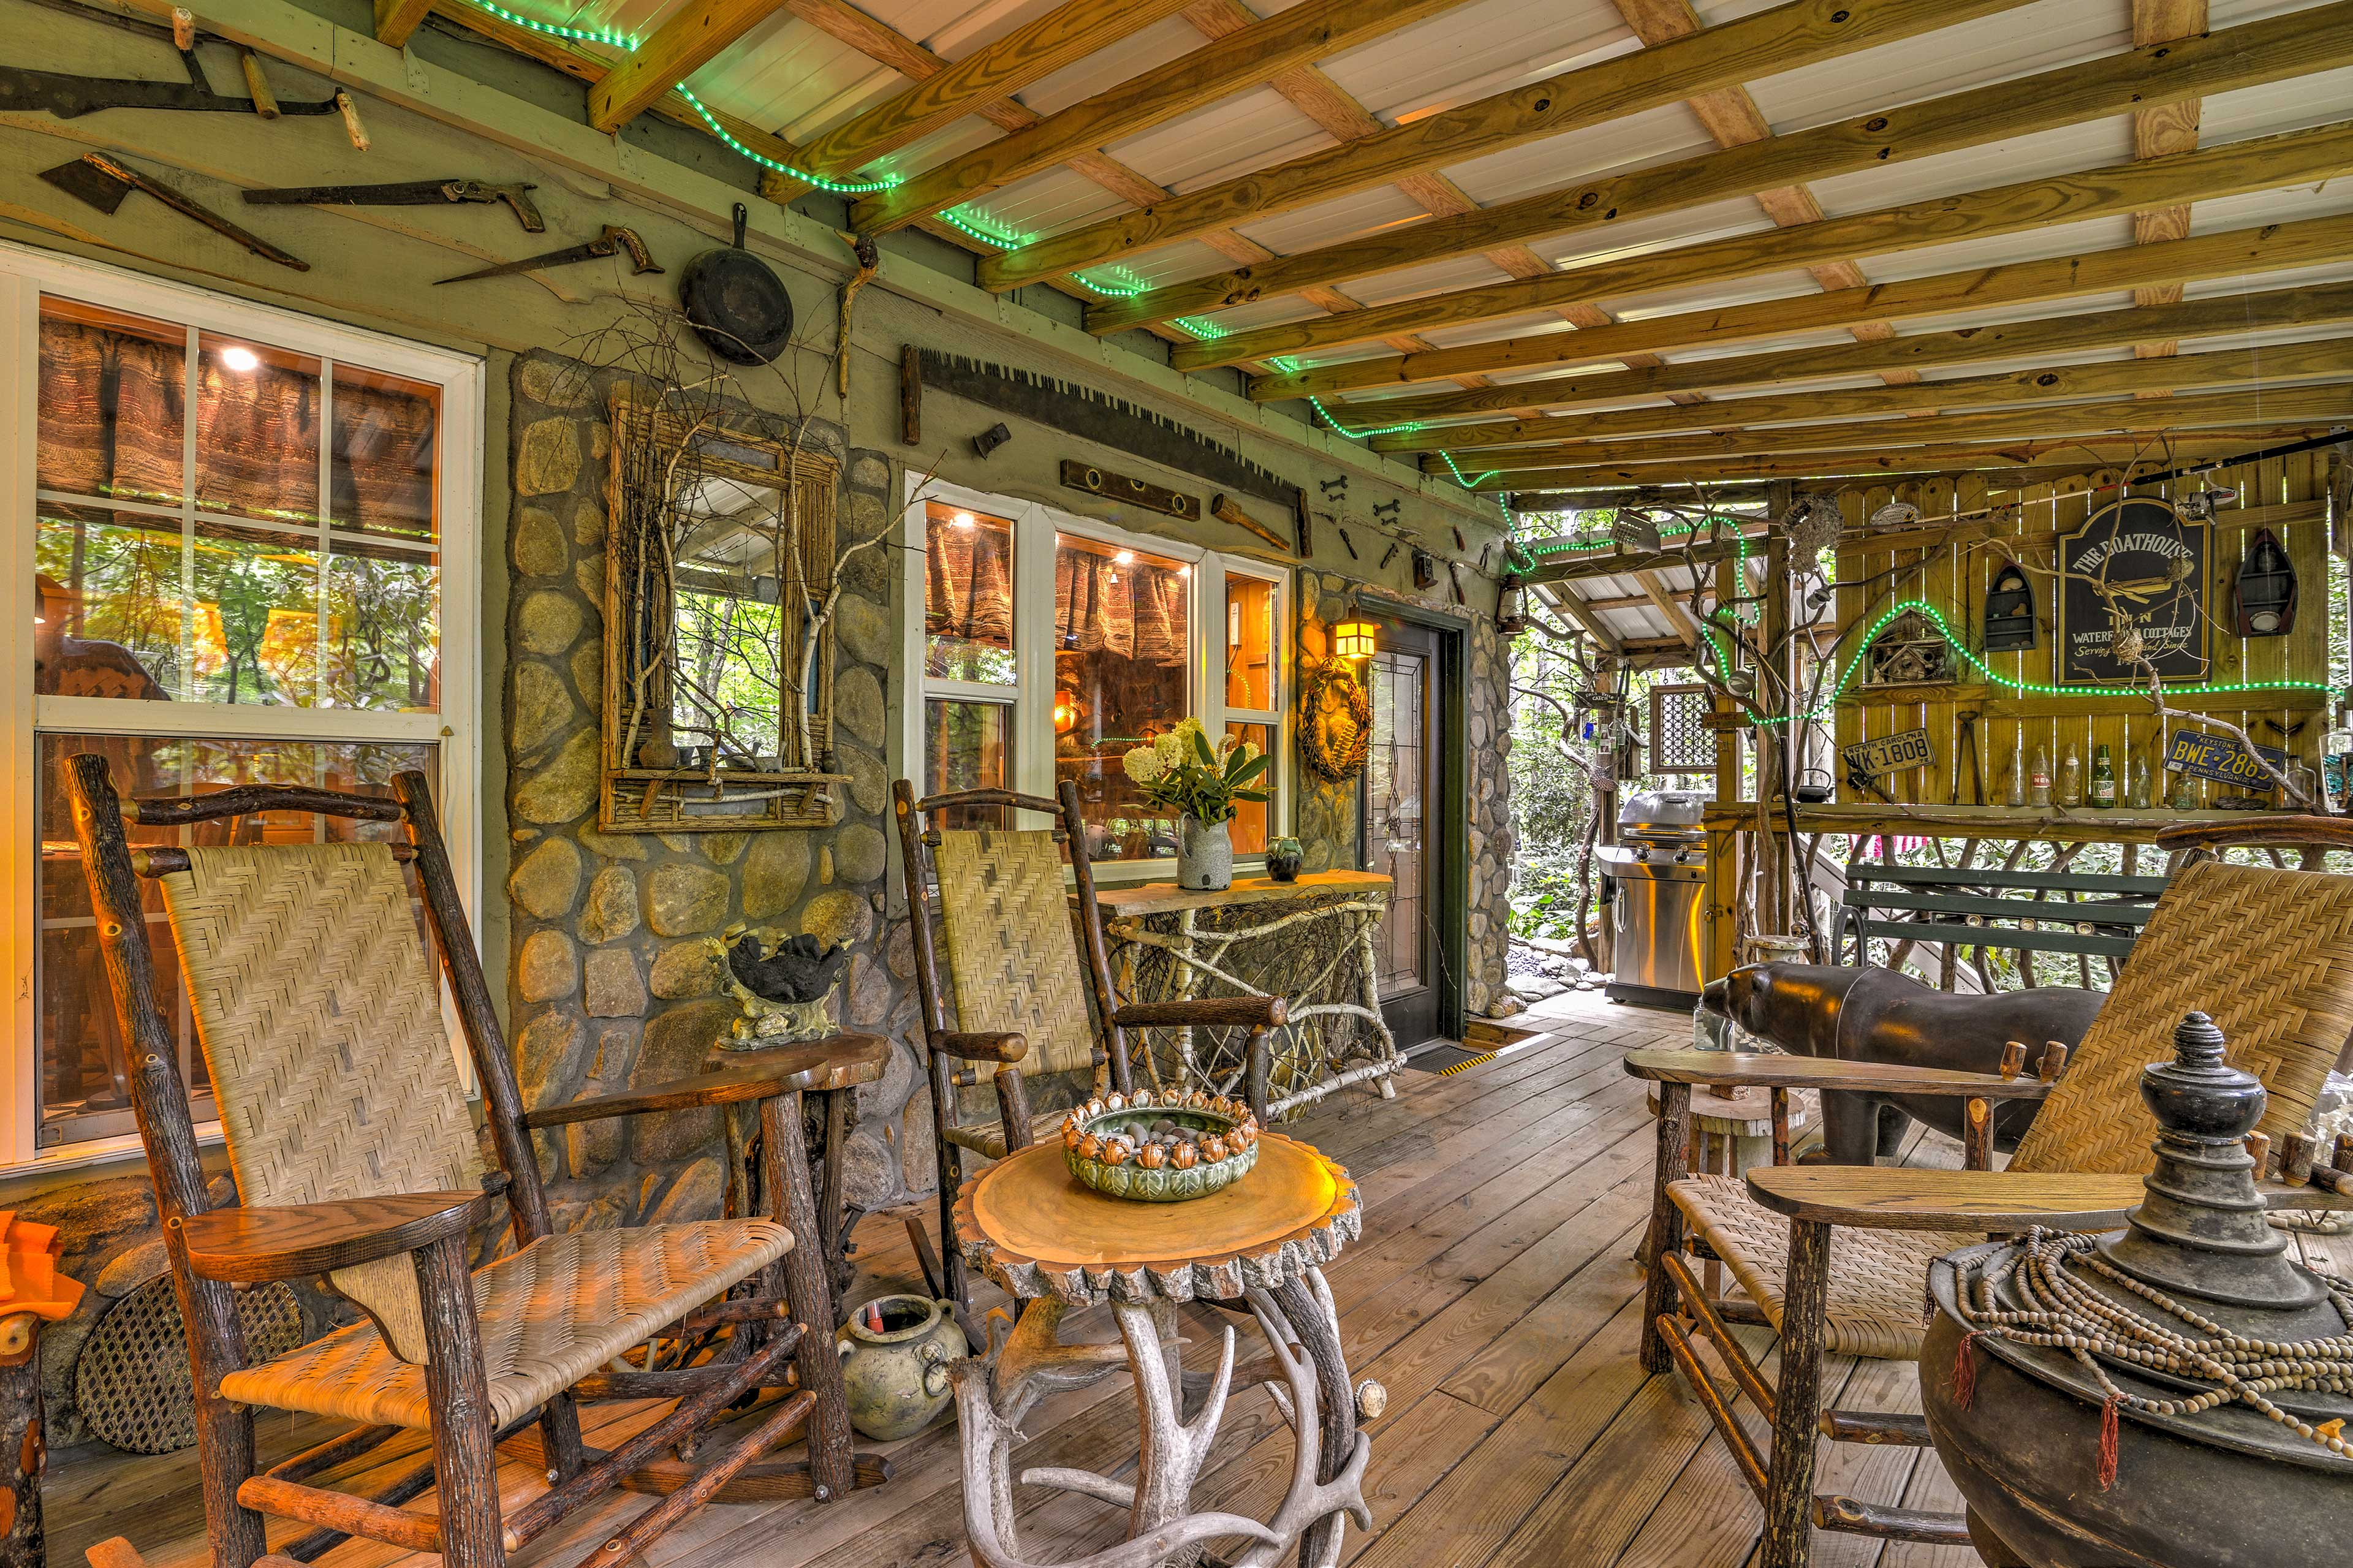 Take dinner outside and spend a night eating on the covered deck!